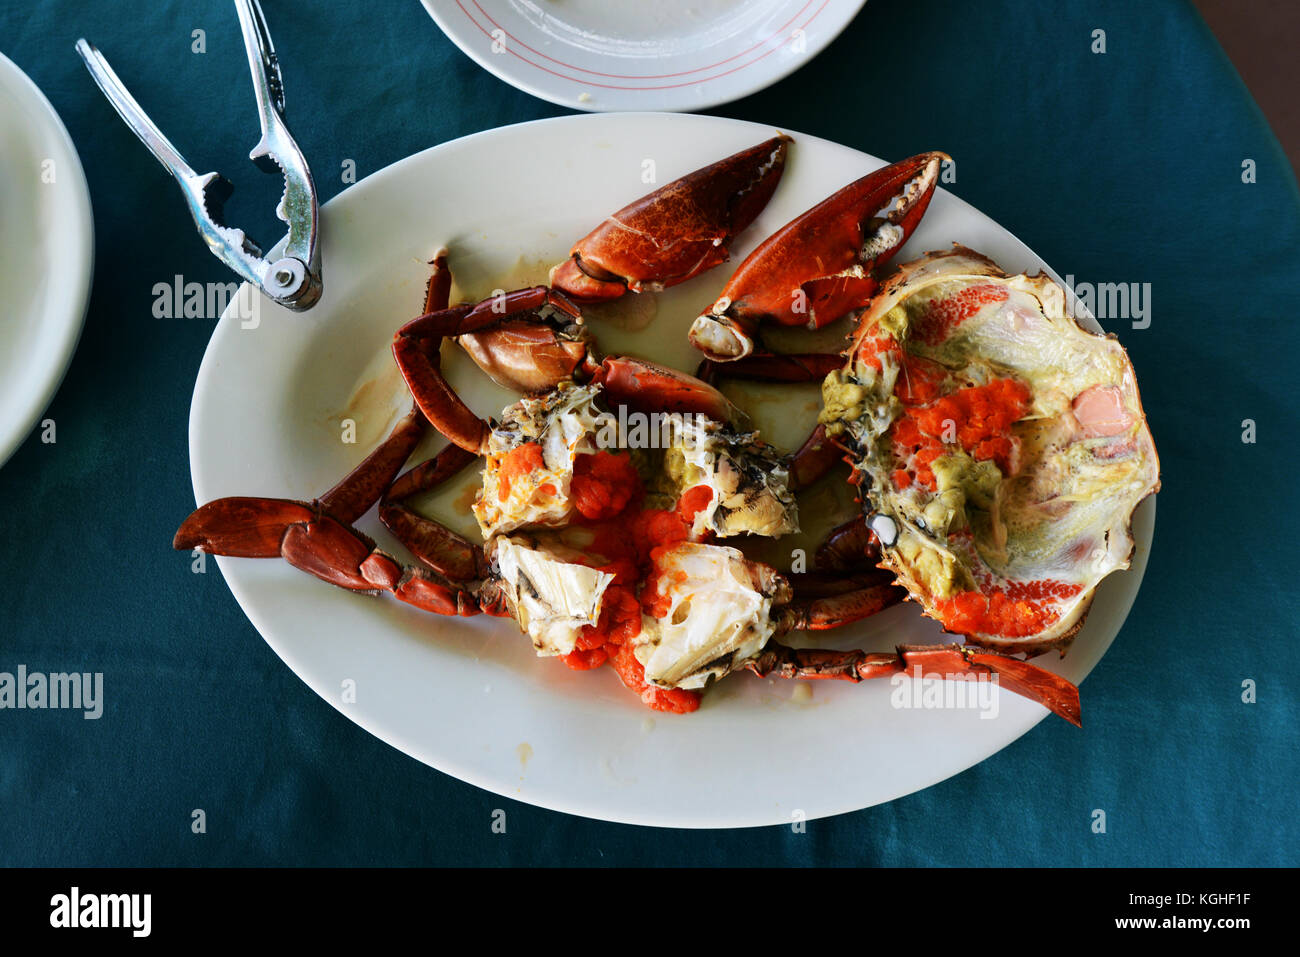 Freshly cooked crab served in a seafood restaurant in Sok Kwu Wan in Lamma Island, Hong Kong. - Stock Image